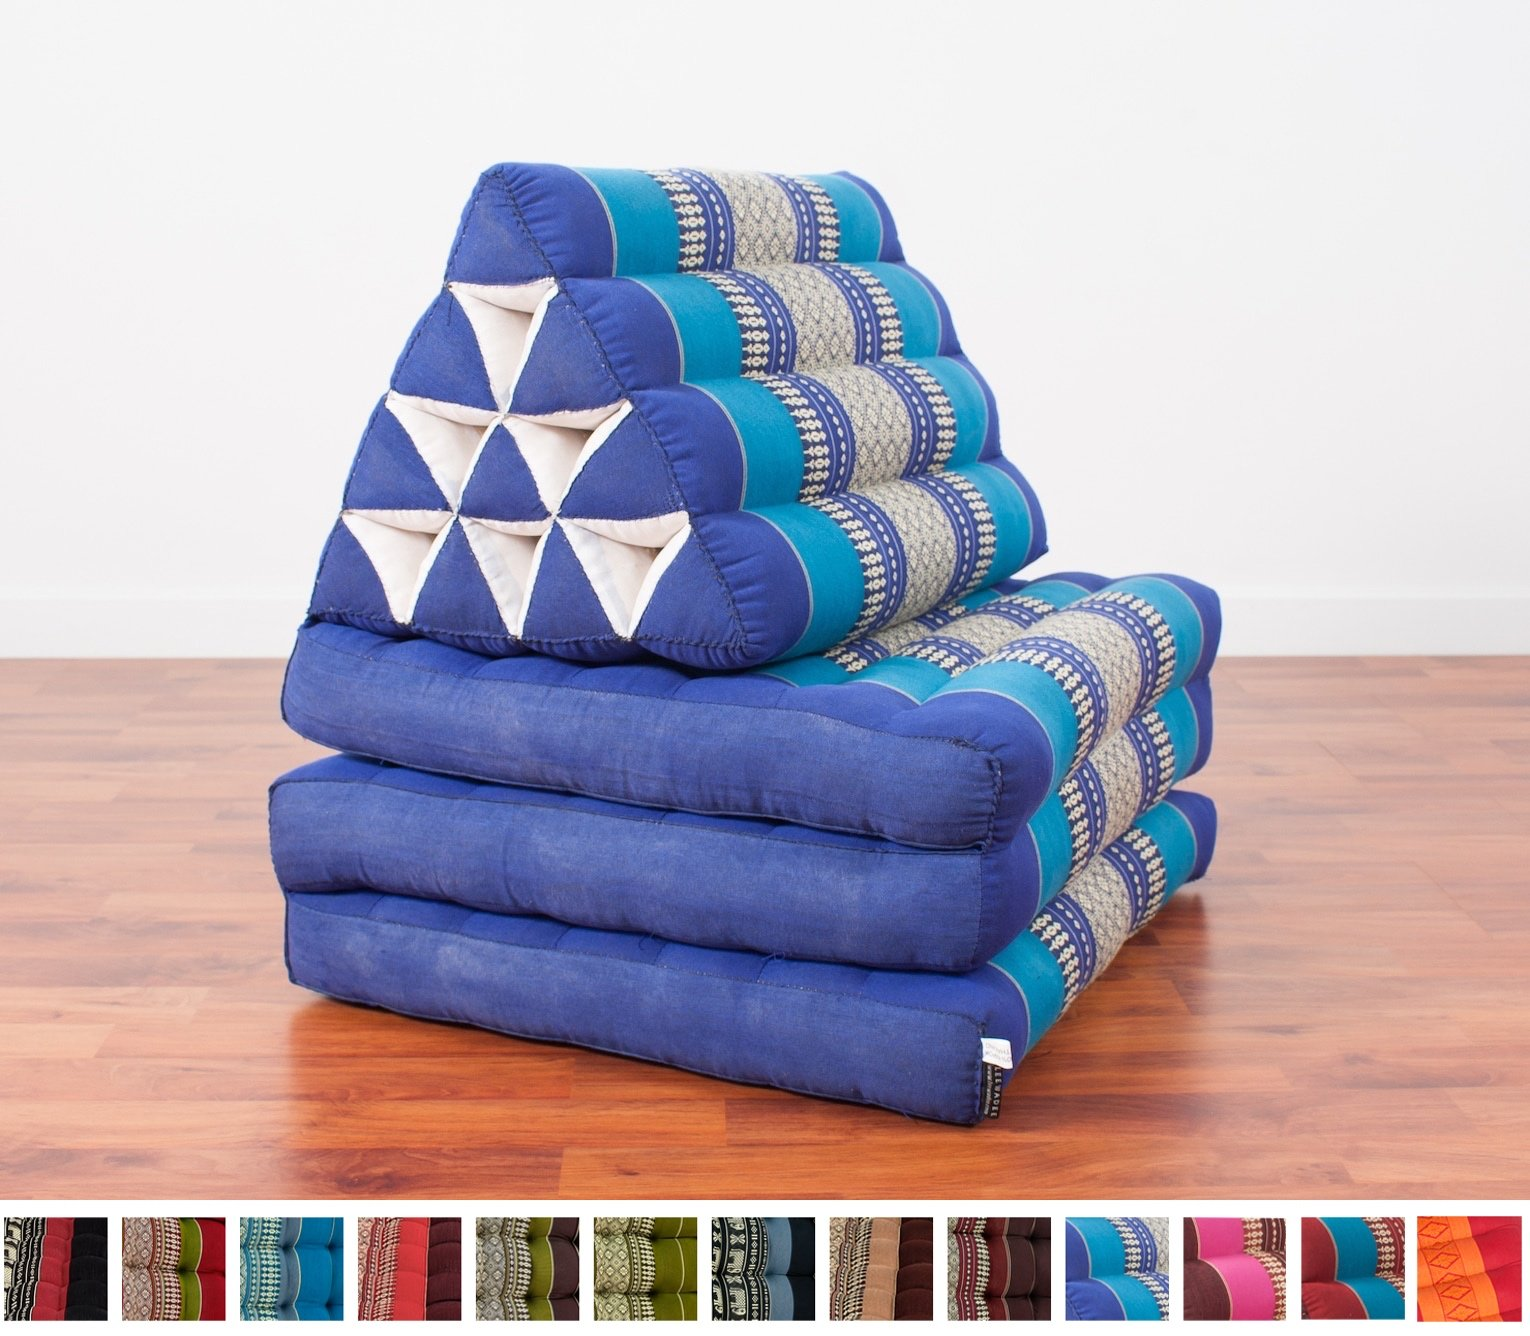 Foldout Triangle Thai Cushion, 67x21x3 inches, Kapok Fabric, Blue by Leewadee